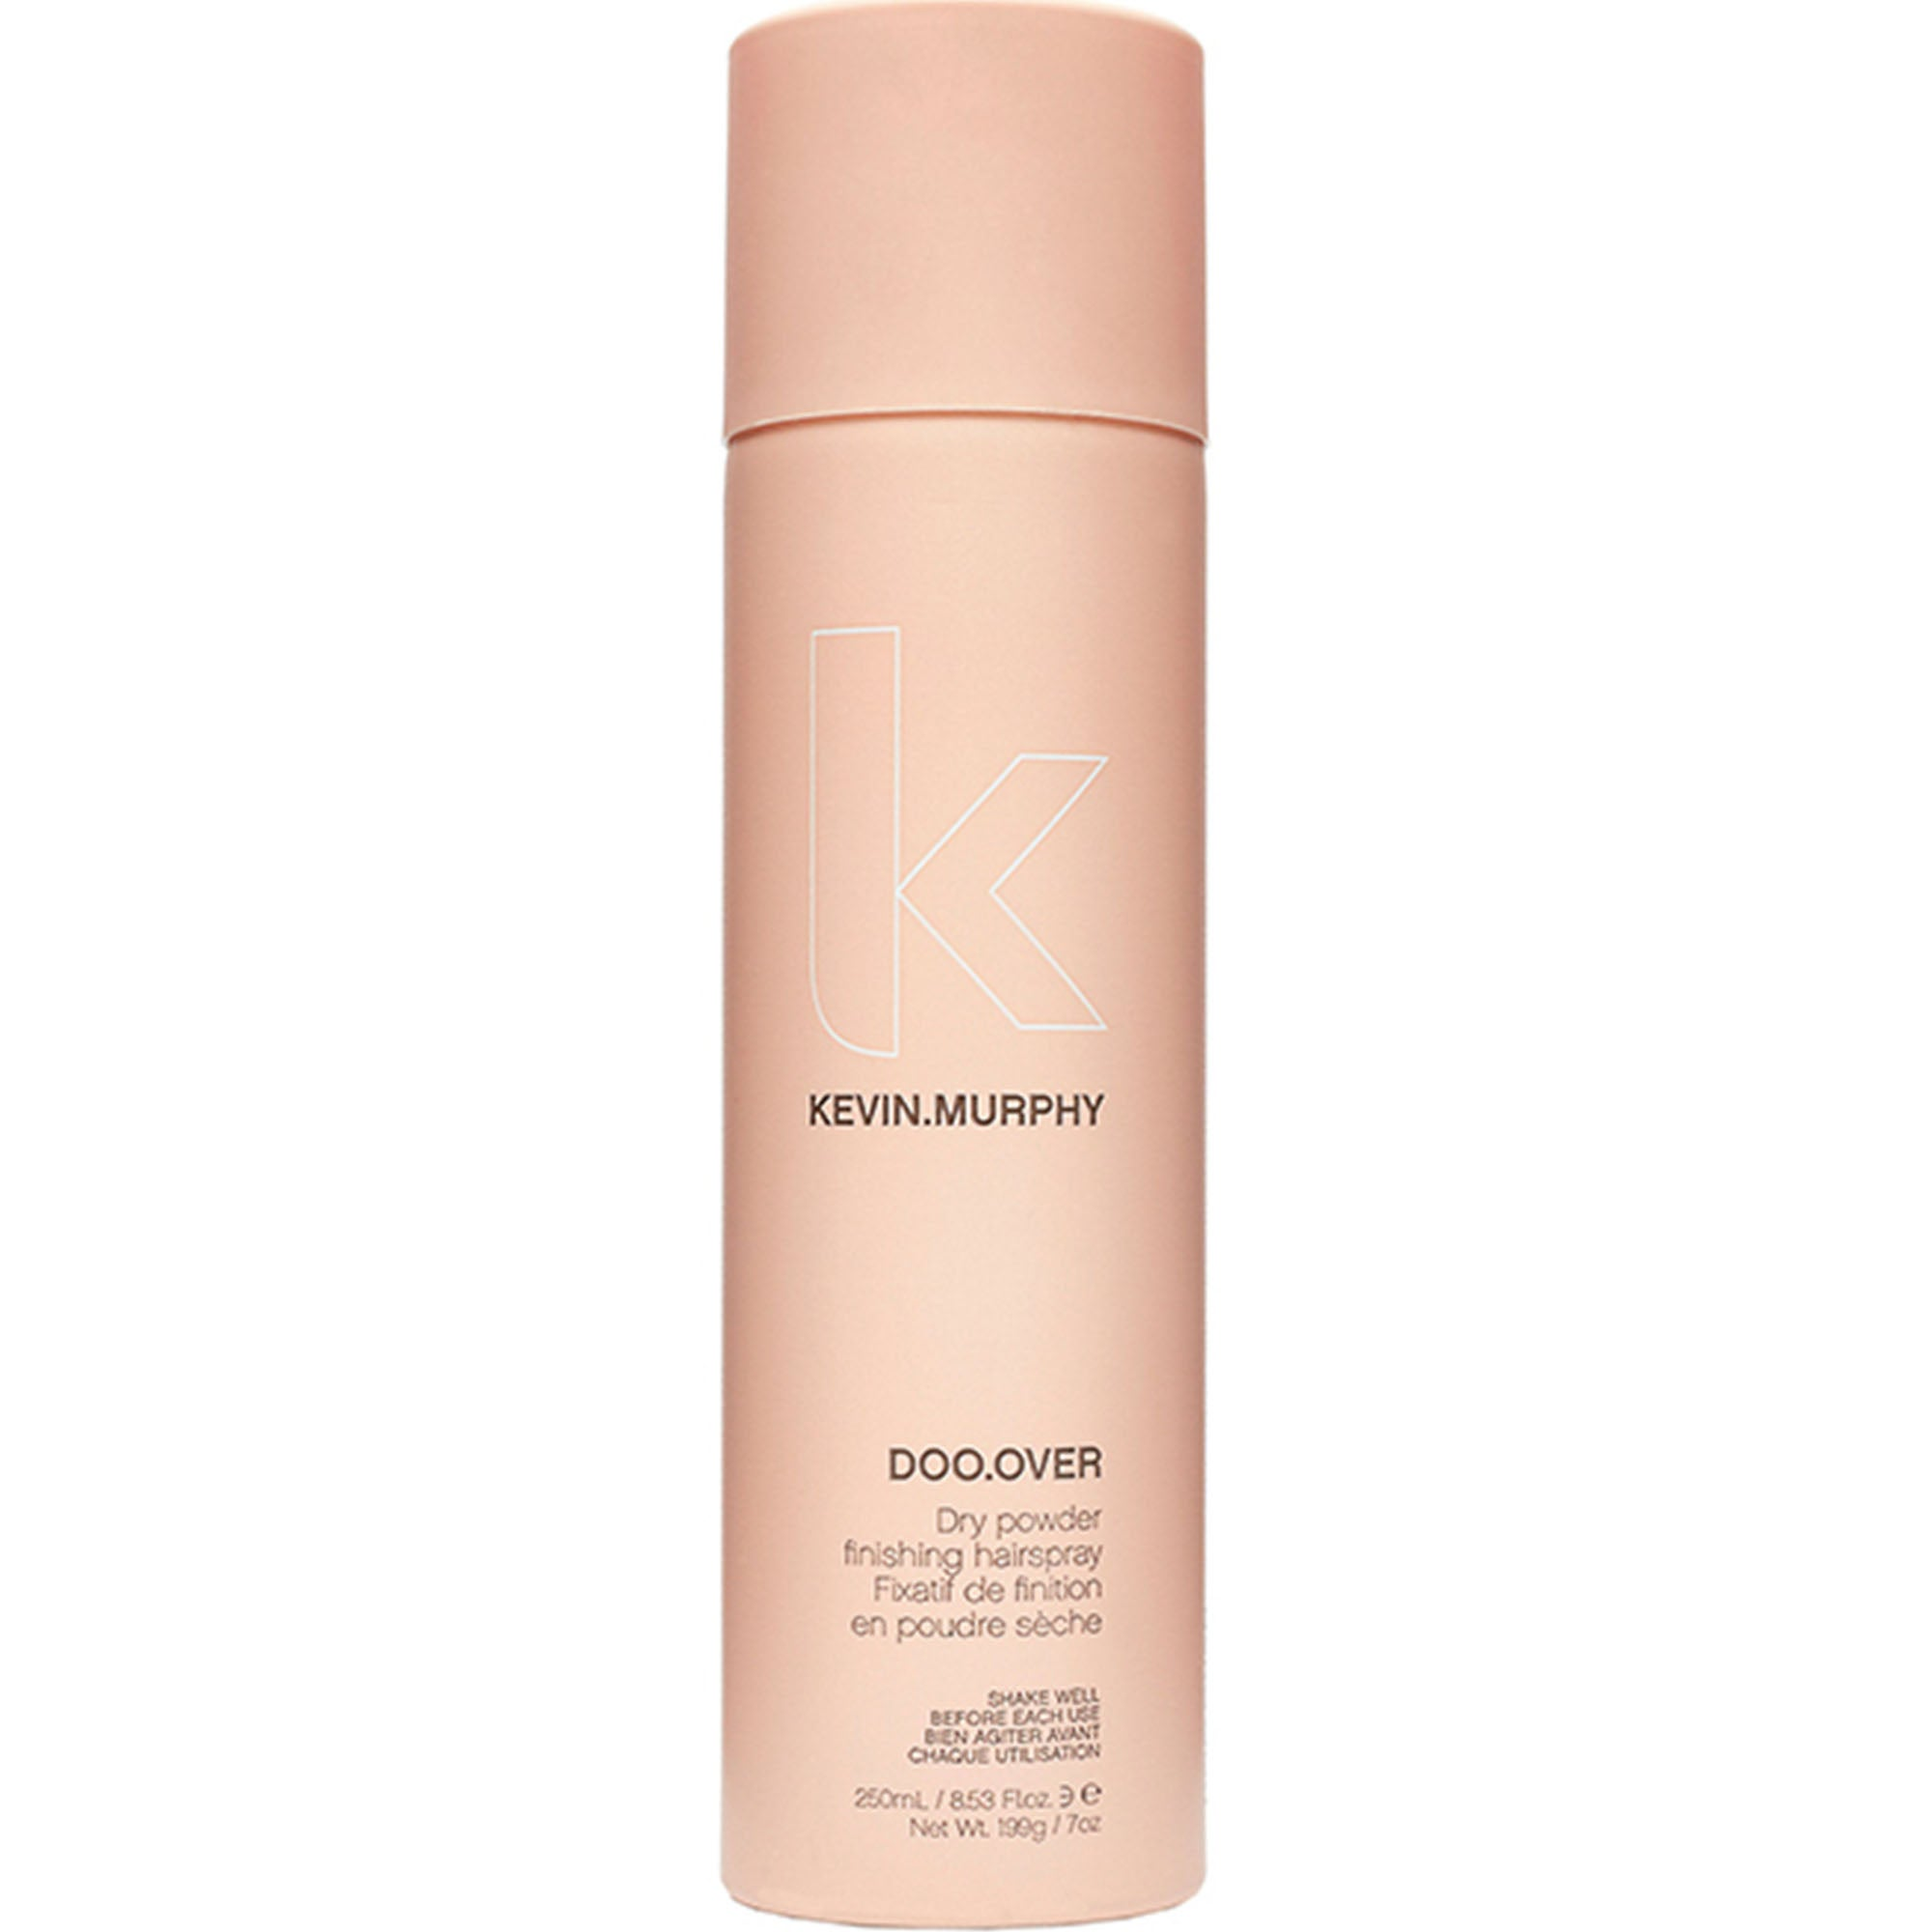 Kevin Murphy Doo.Over 250 ml Kevin Murphy Stylingprodukter